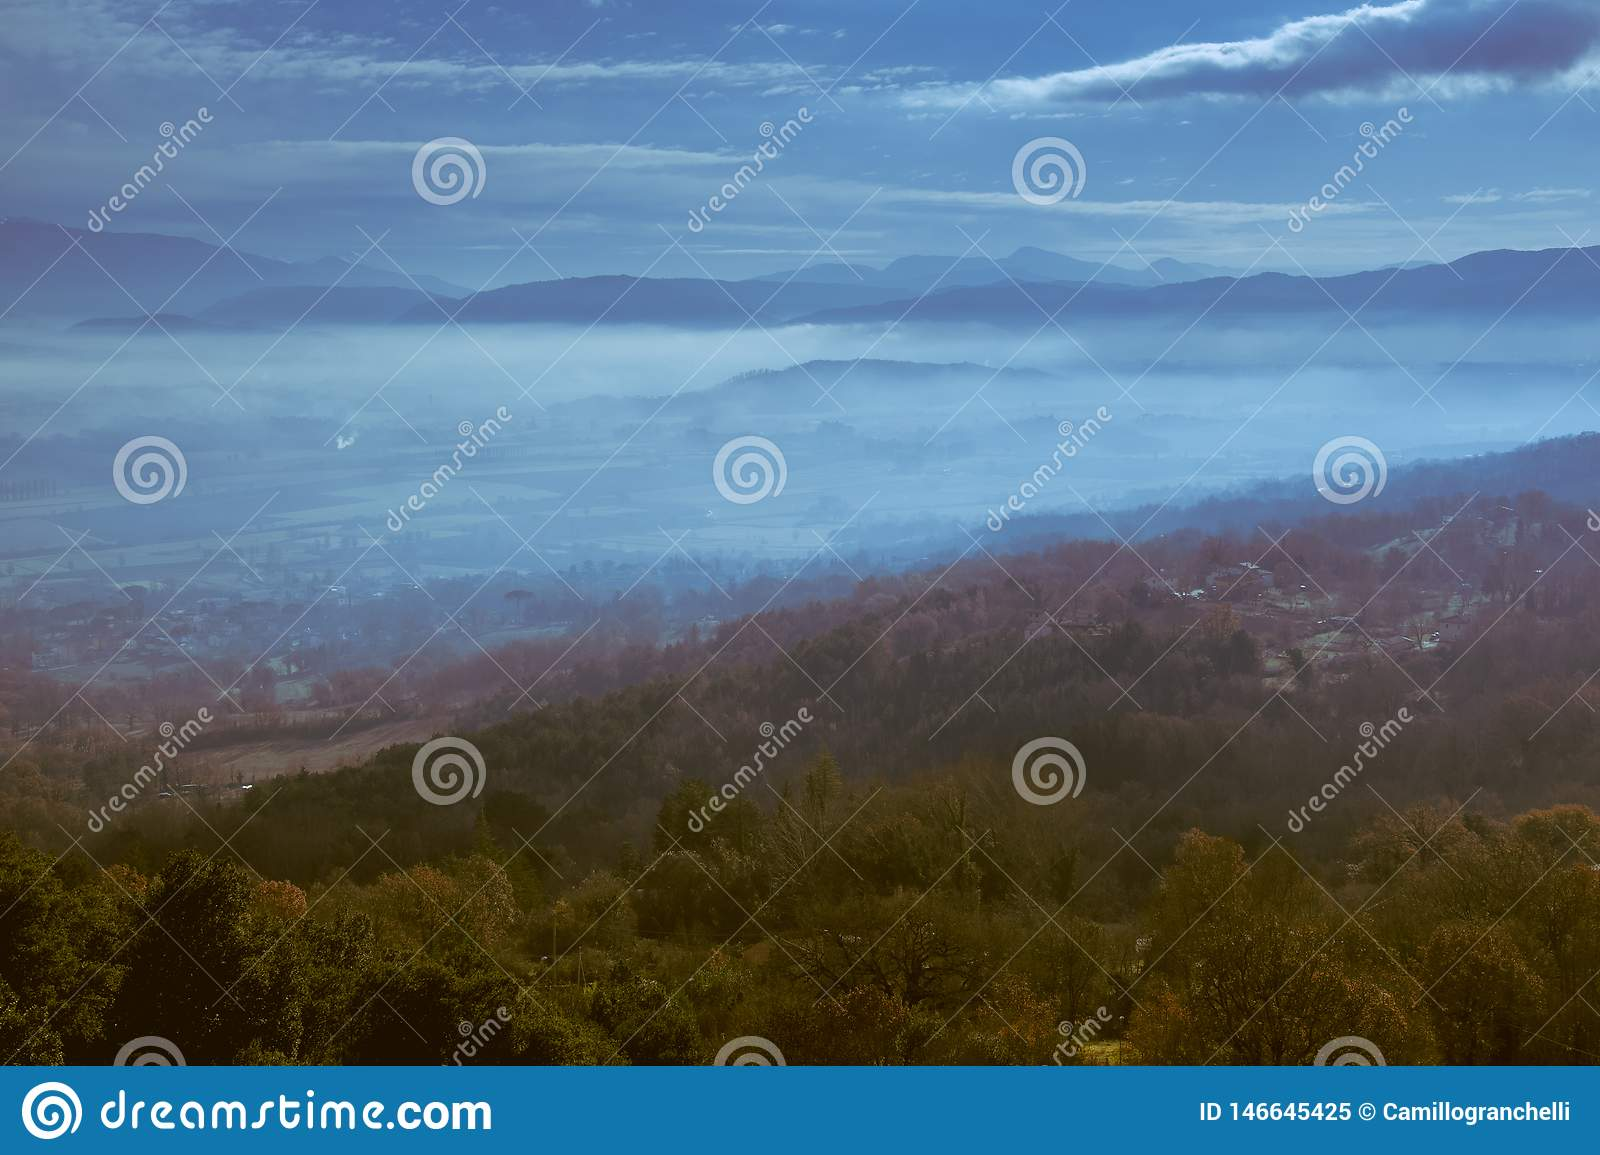 Panoramic view from a hill in the evening with low clouds over the valley